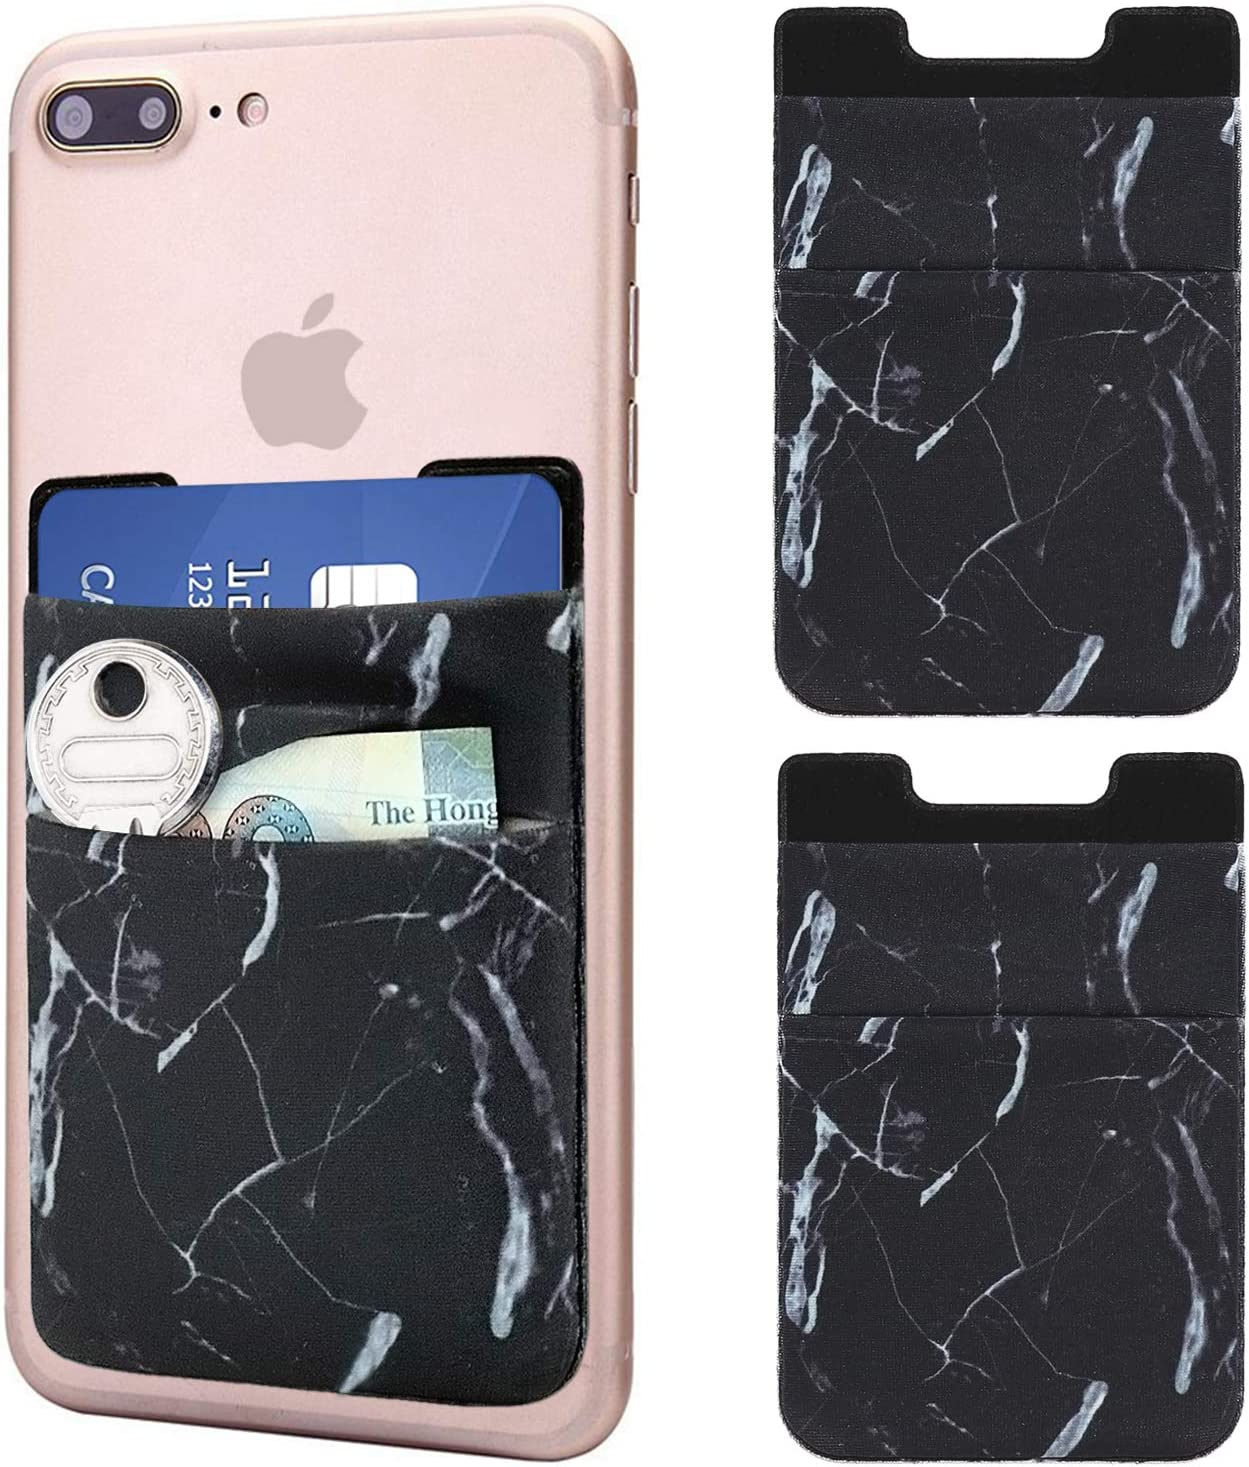 Cell Phone Wallet SHANSHUI 3-M Adhesive Card Sleeve Silicone Card Pouch Stick on Phone Works with iPhone//Samsung Galaxy//Sony//Huawei and Most Smart Phones Black,White,Pink